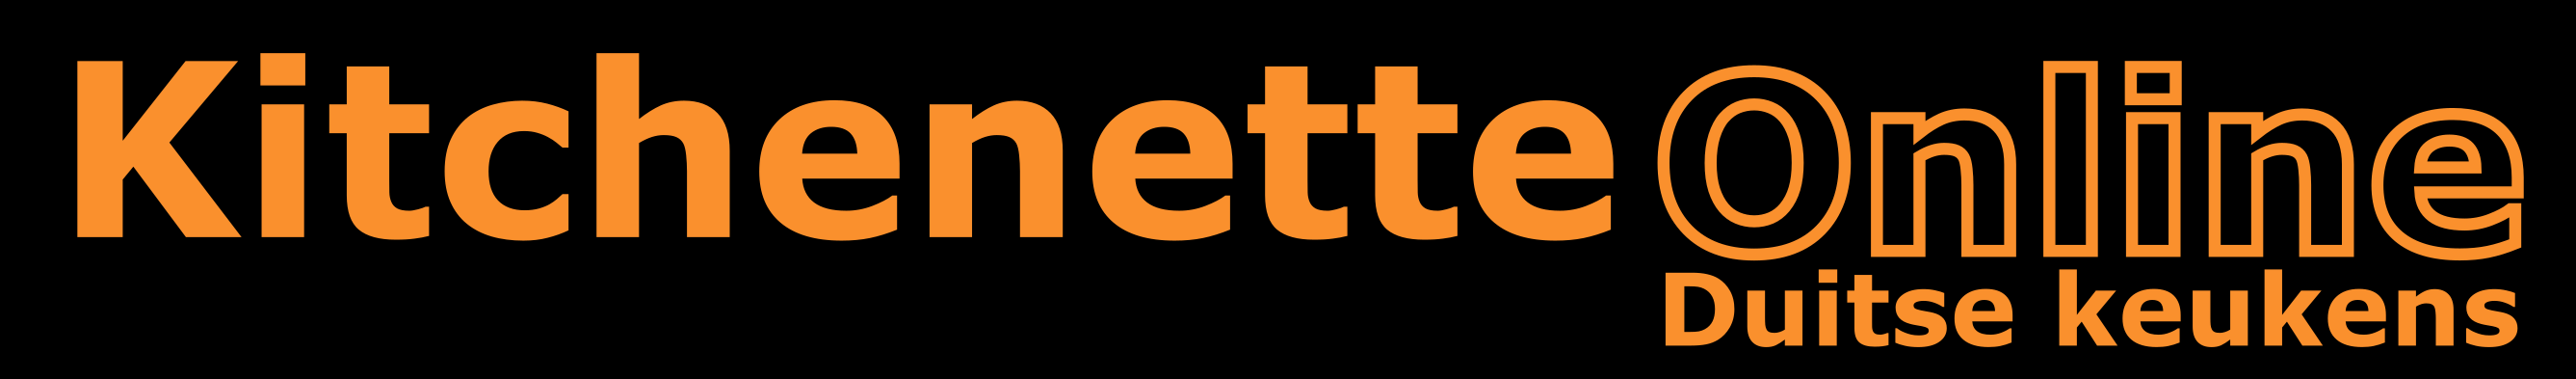 Logo KitchenetteOnline